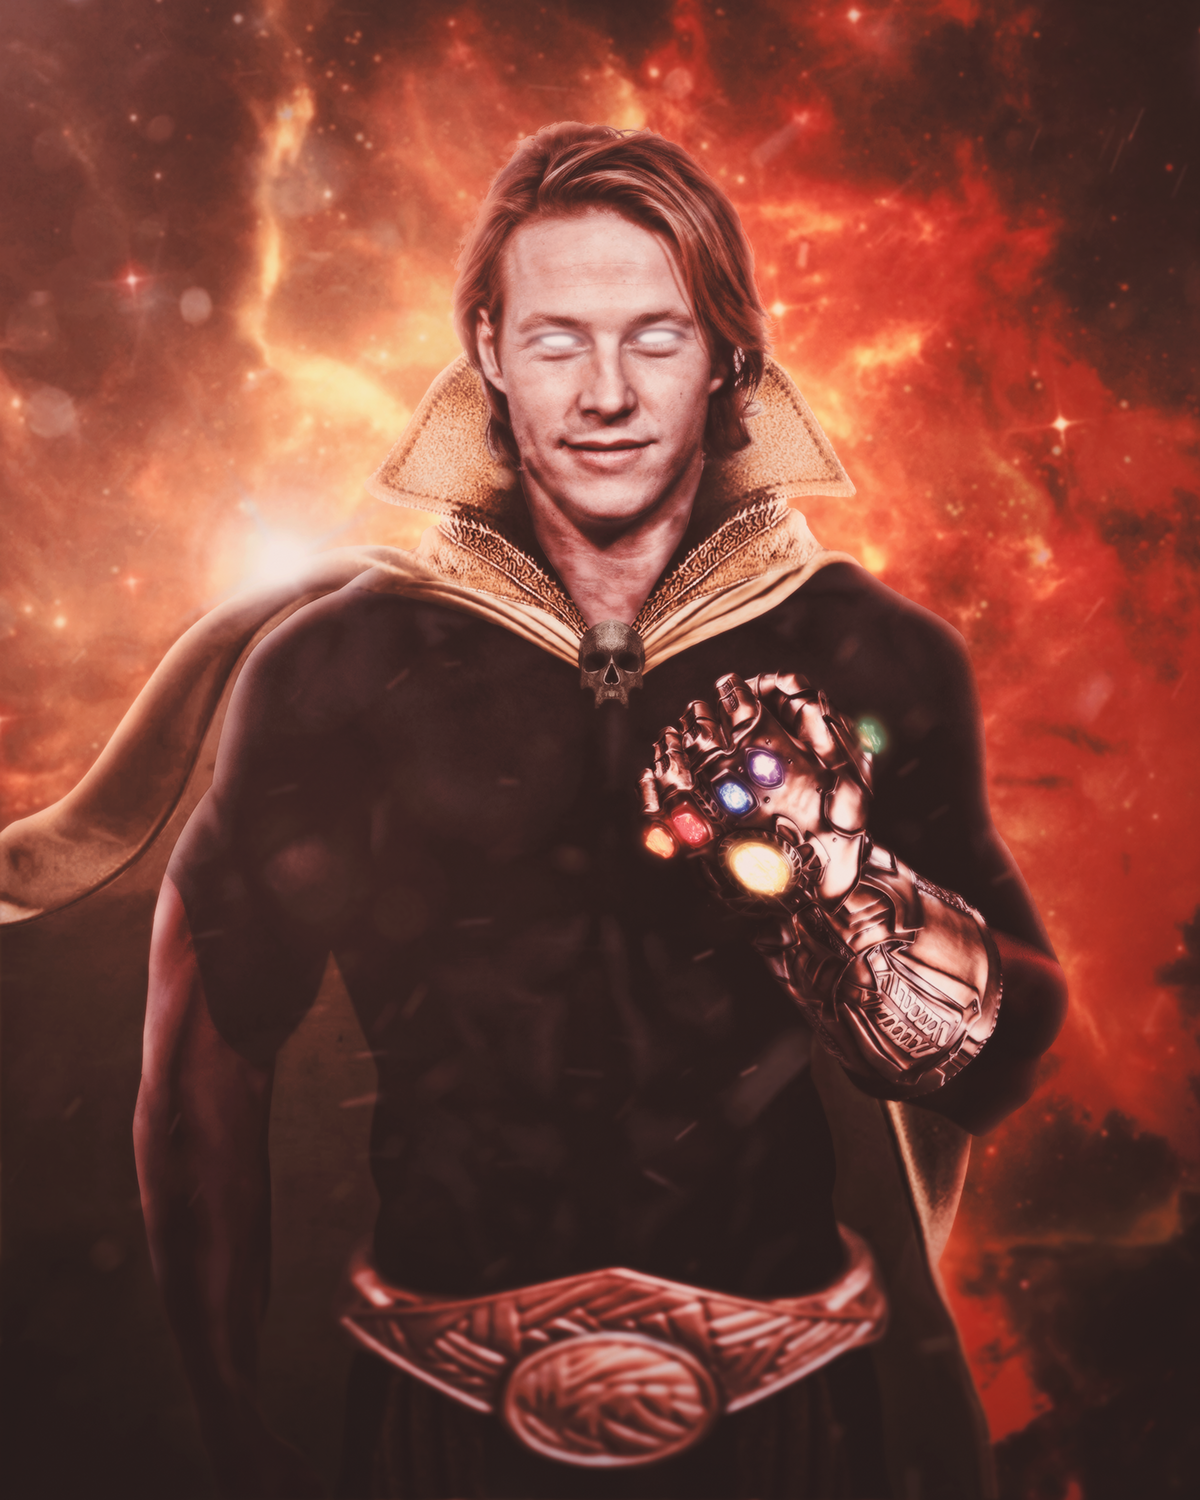 """... Infinity War"""" and the events that transpired (don't want to spoil it  for those who haven't seen it yet), many fans are speculating that Adam  Warlock's ..."""